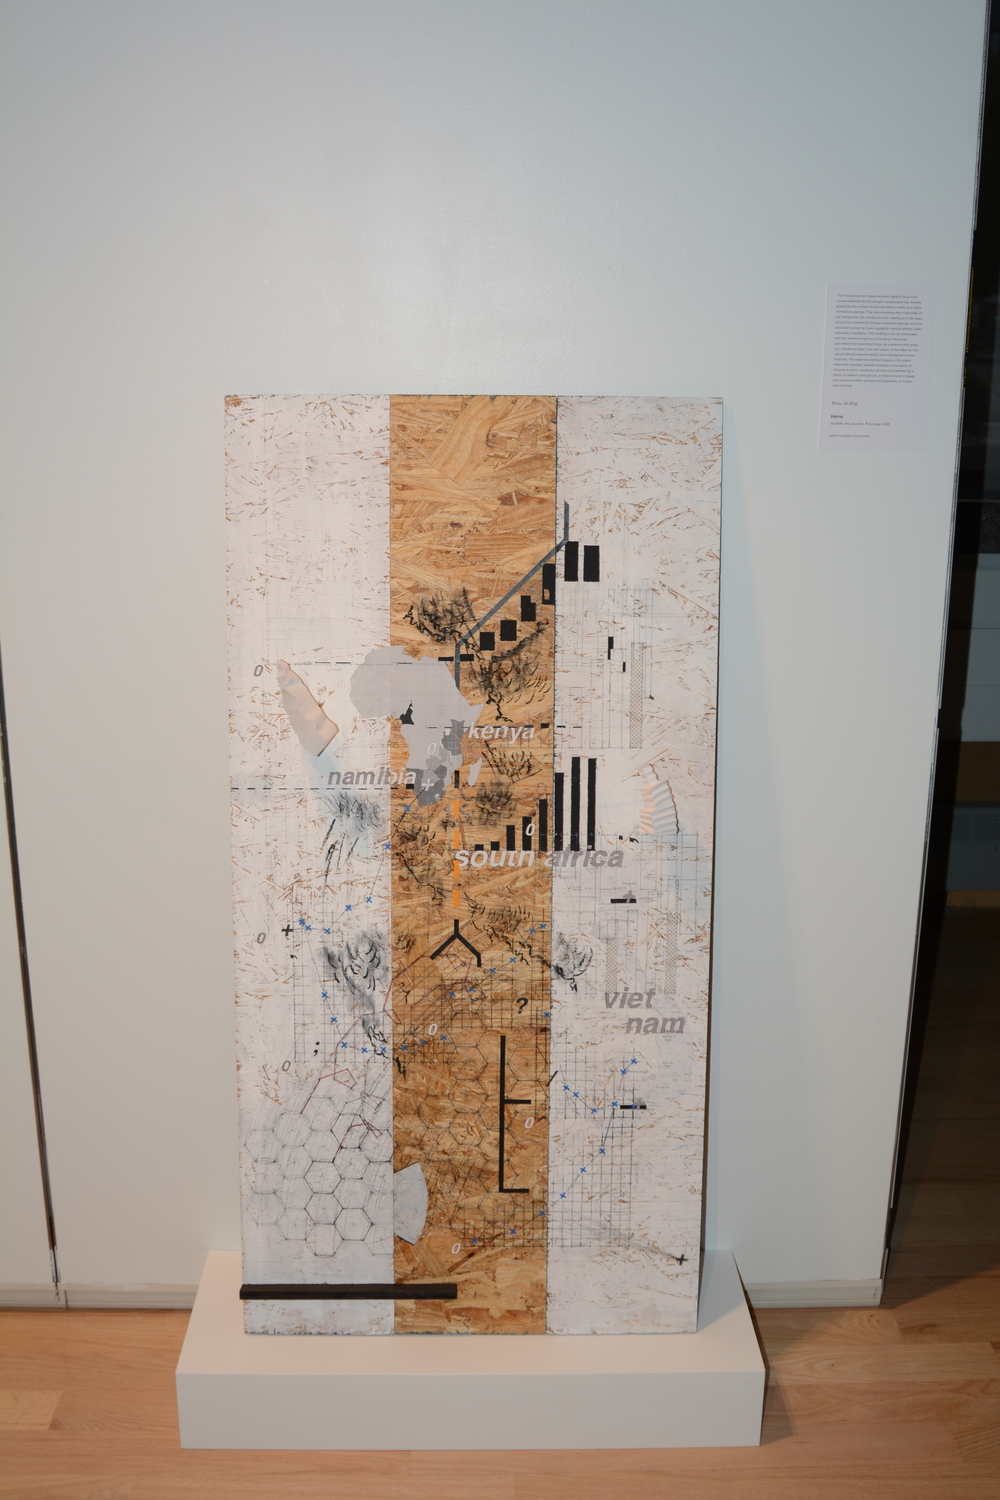 Shou Jie Eng Horns Collage: Graphite, ink, gouache, PLA, paper, OSB, 48 x 14 x 48 in. The rhinoceros horn trade receives rightful focus from conservationists for the danger it poses (and has already posed) to the survival of both the African white and black rhinoceros species. The piece explores the irrationality of the demand for rhinoceros horn, seeing as it has been struck from traditional Chinese medicine manuals and has also been proven to have negligible medical effects under laboratory conditions.